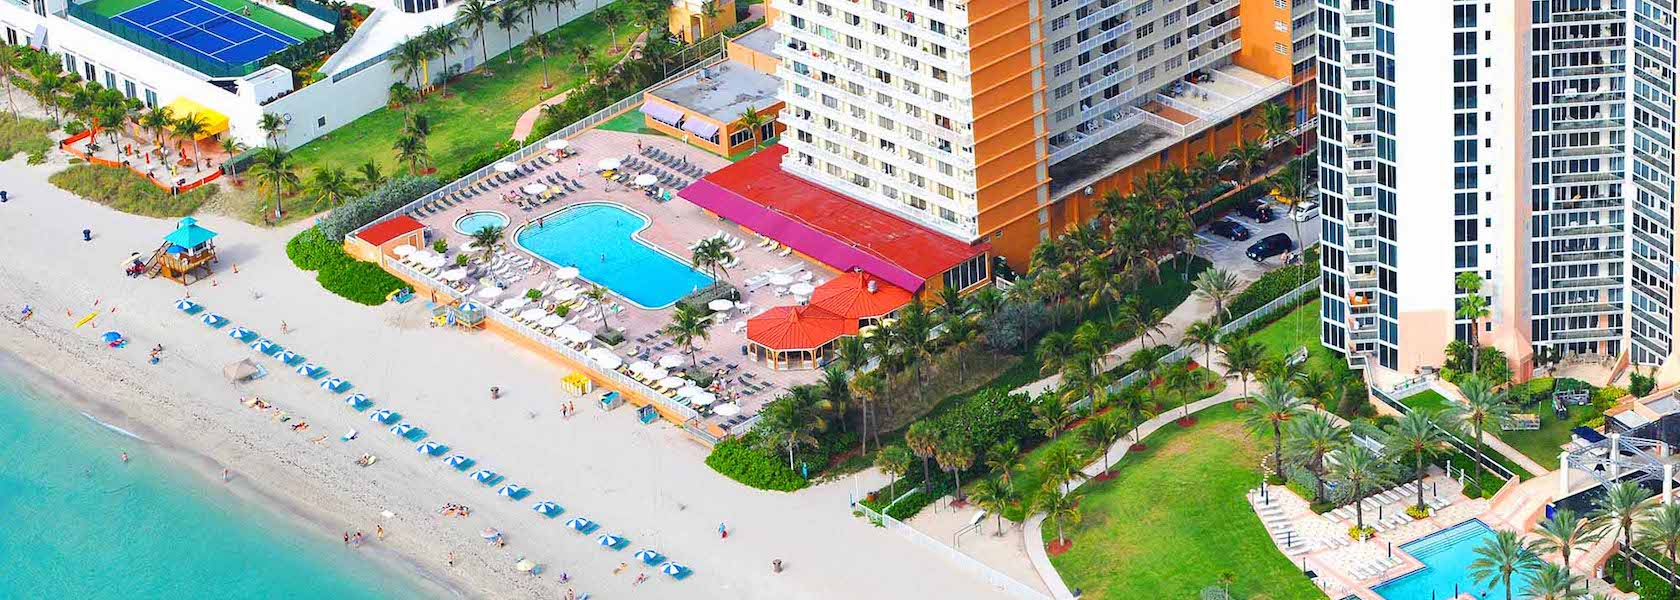 Aerial view of Marco Polo Beach Resort property